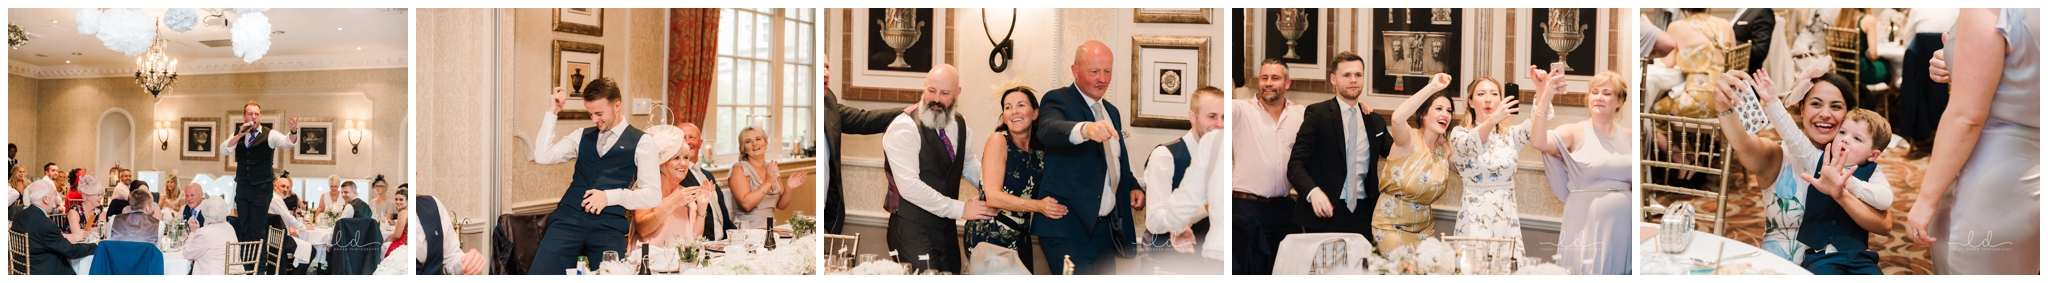 Woodhall Wetherby Wedding Photos-2